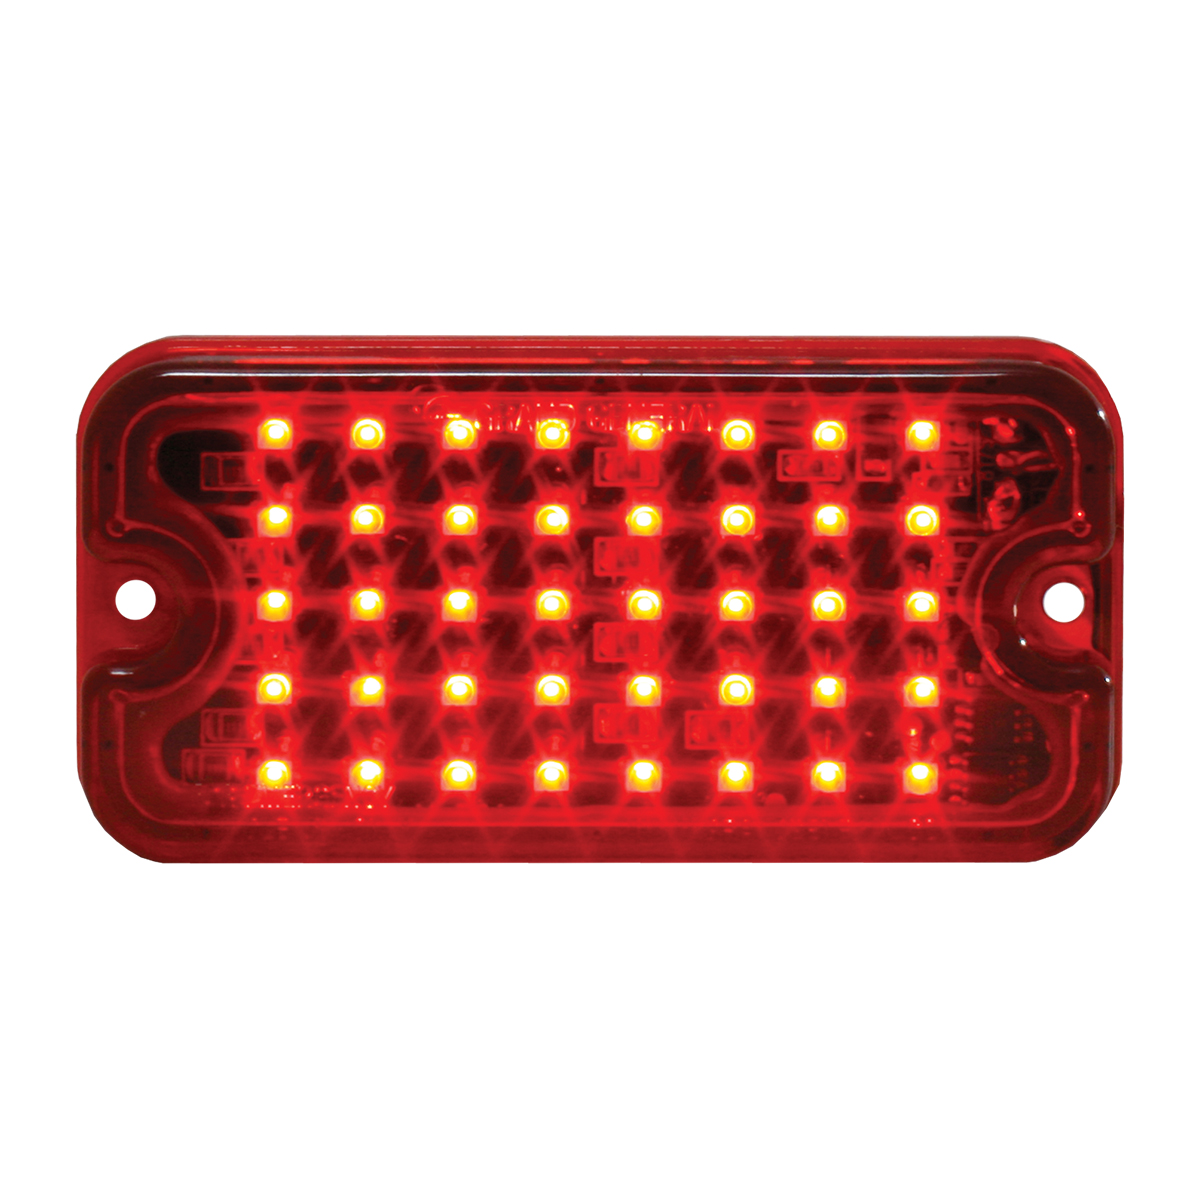 parts lights amber all beacon beacons bright open strobe lighting leds with moreinfo led included super light